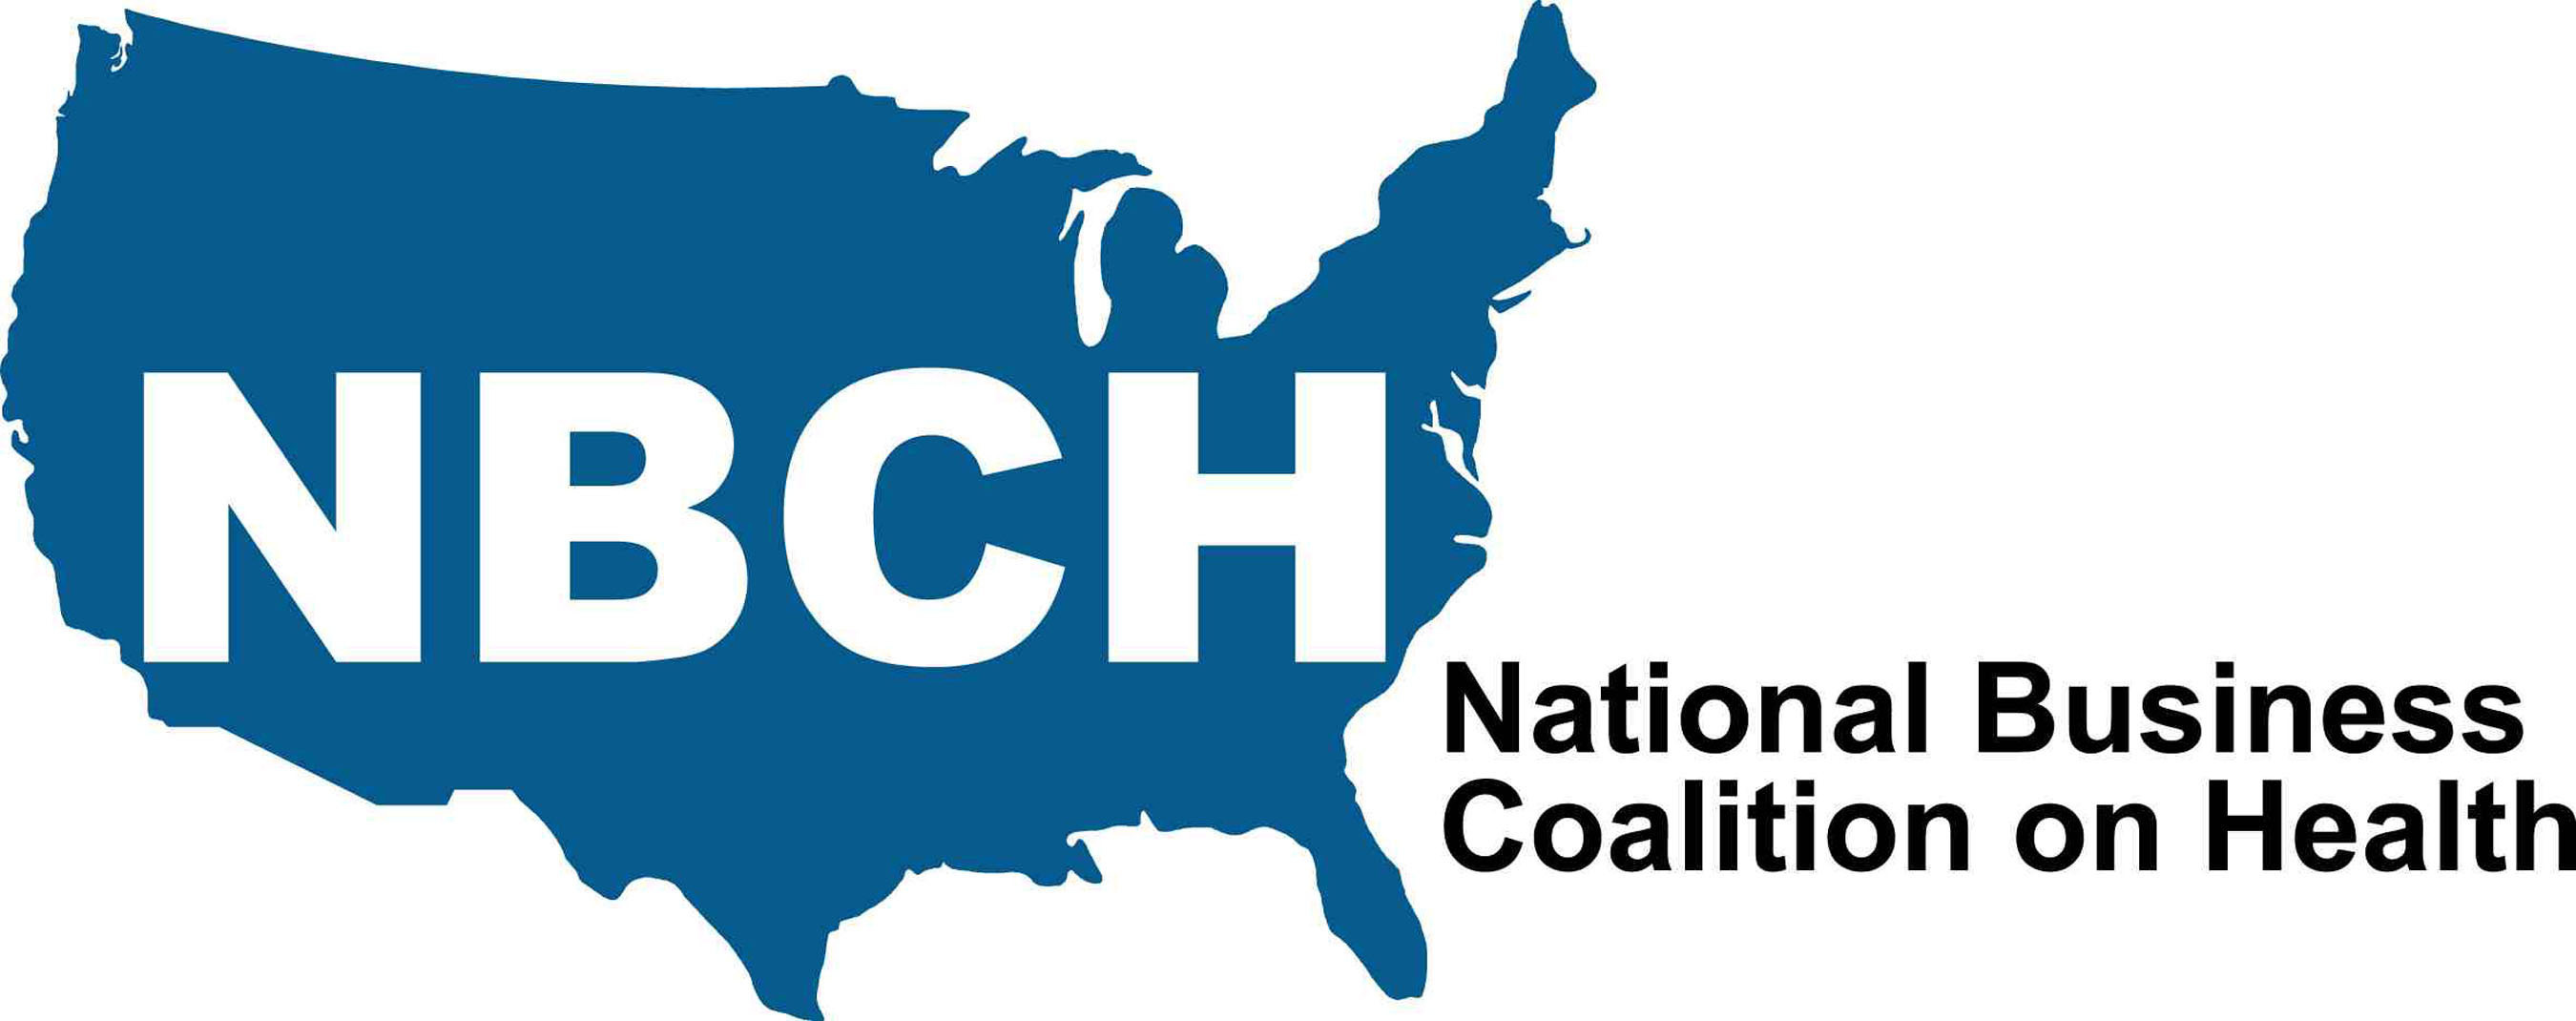 National Business Coalition on Health Logo